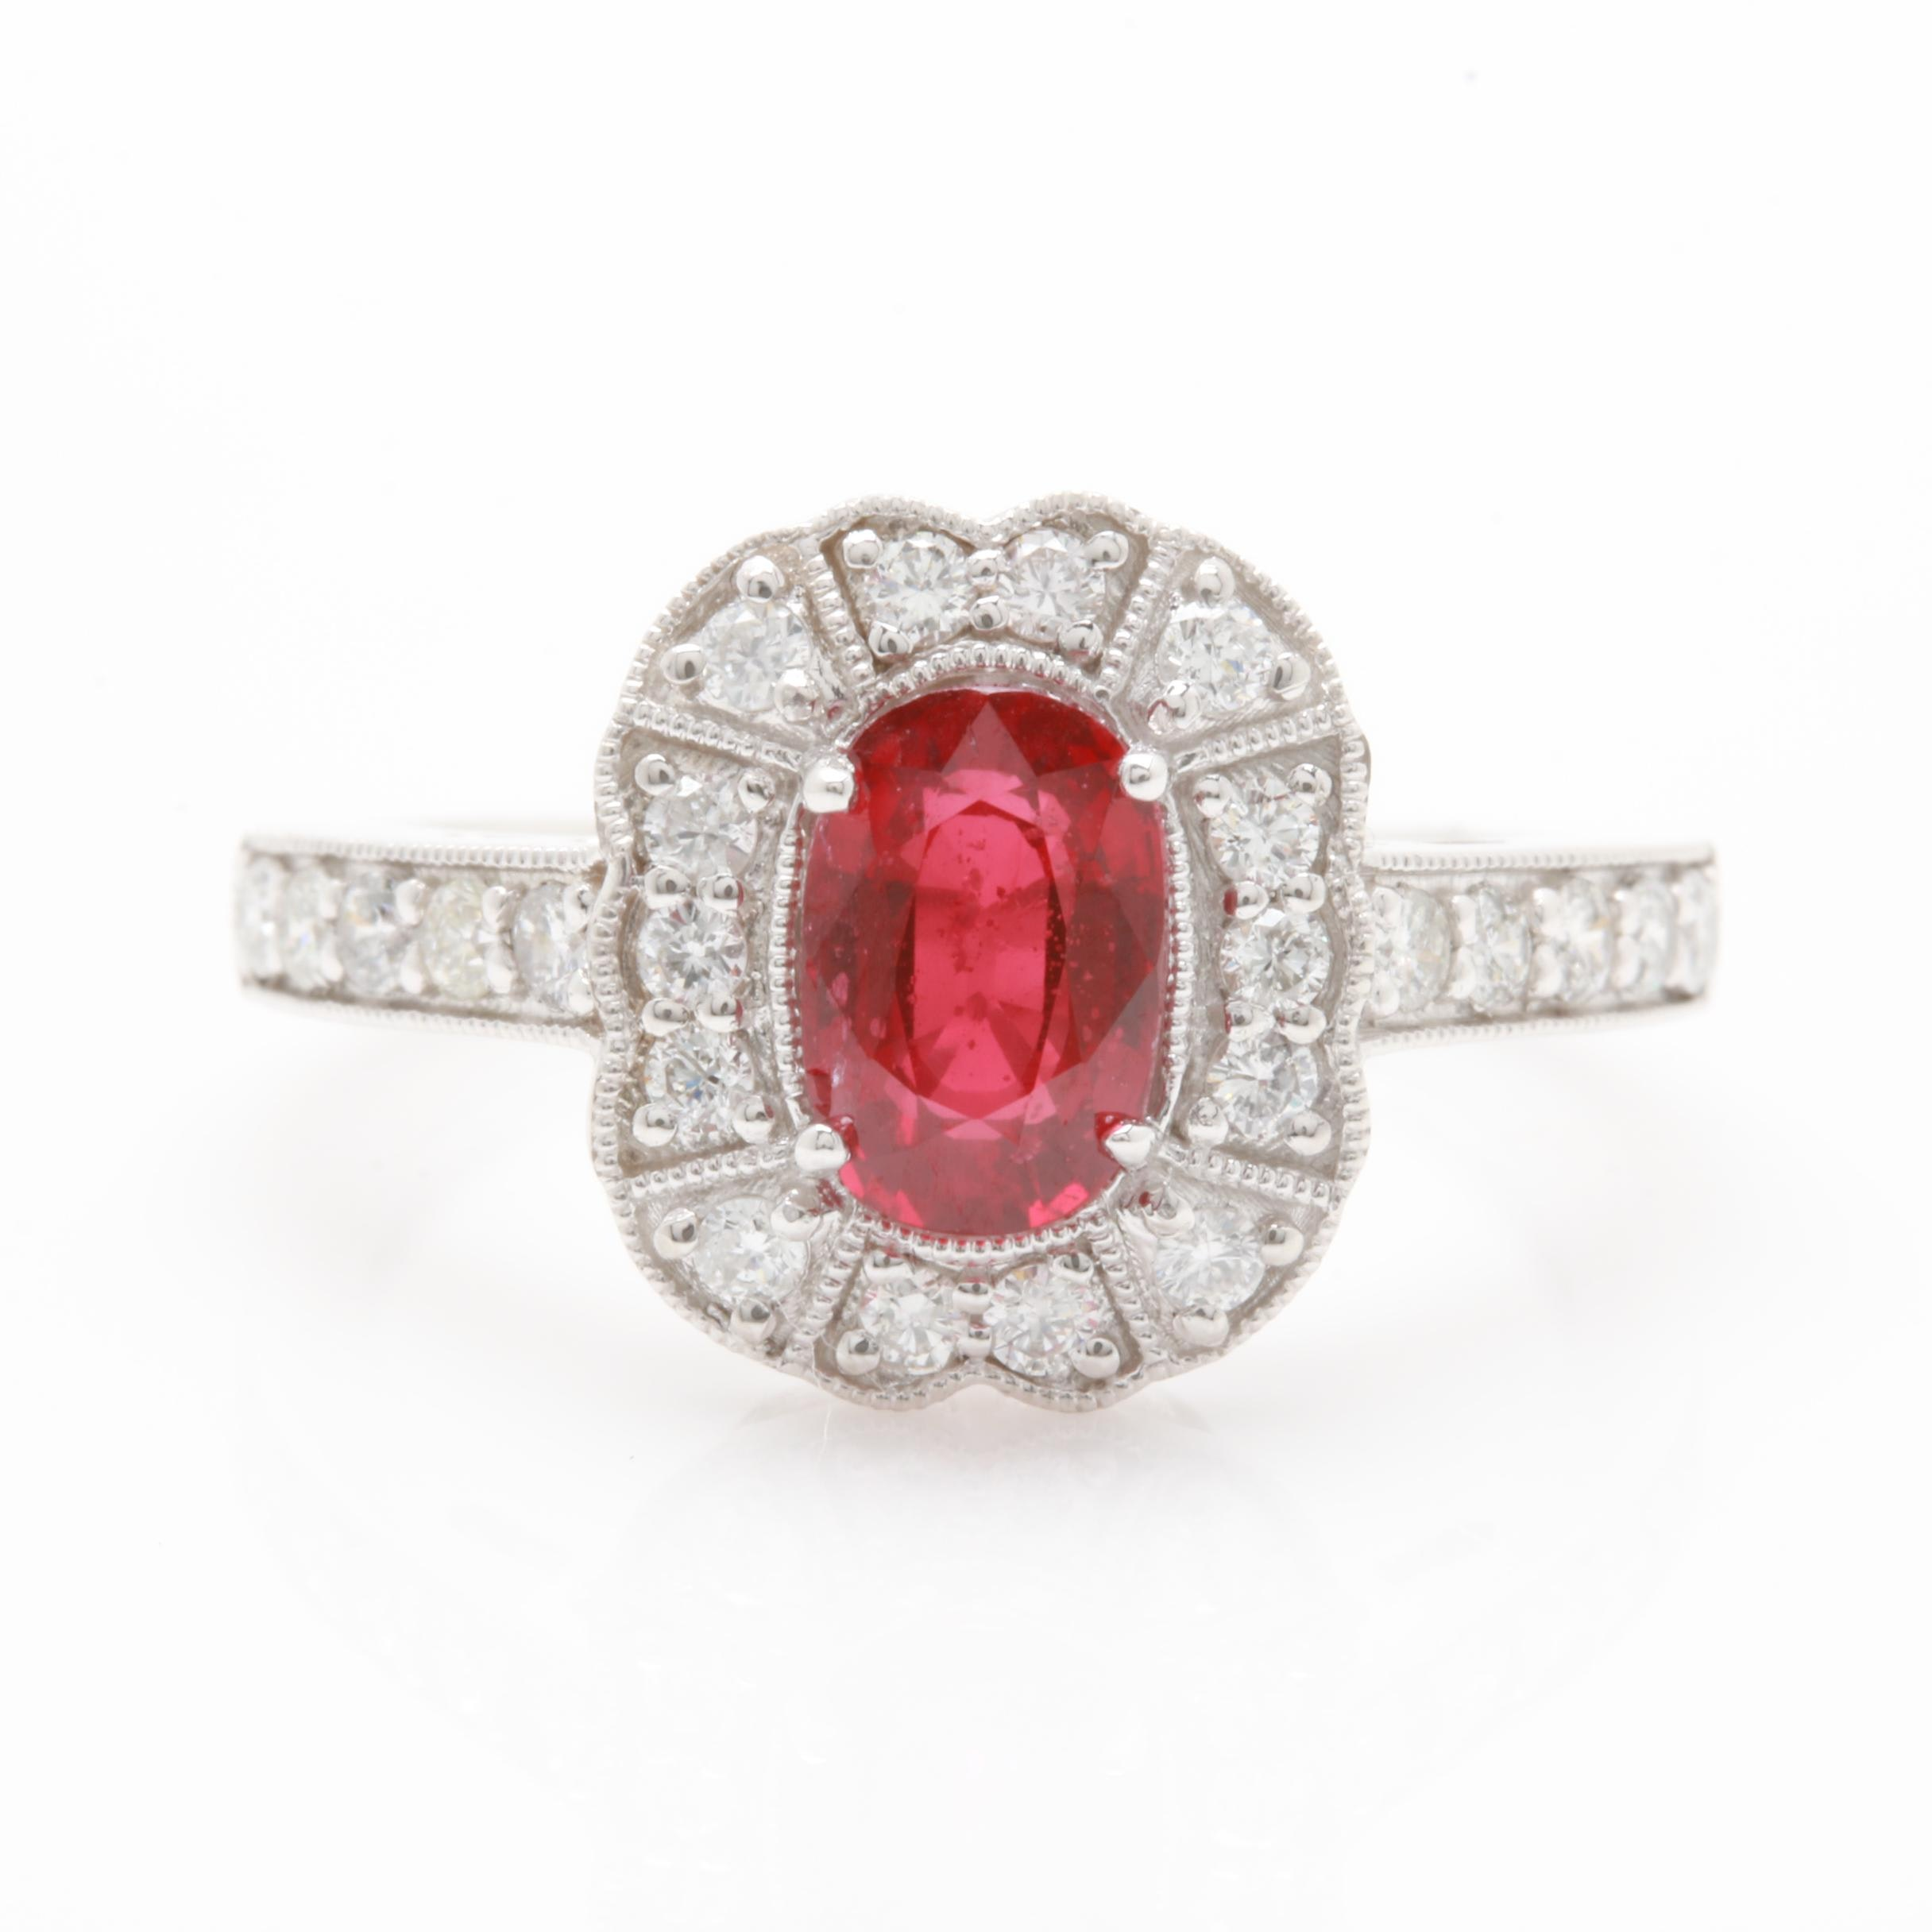 Platinum 1.50 CT Ruby and Diamond Ring with GIA Report